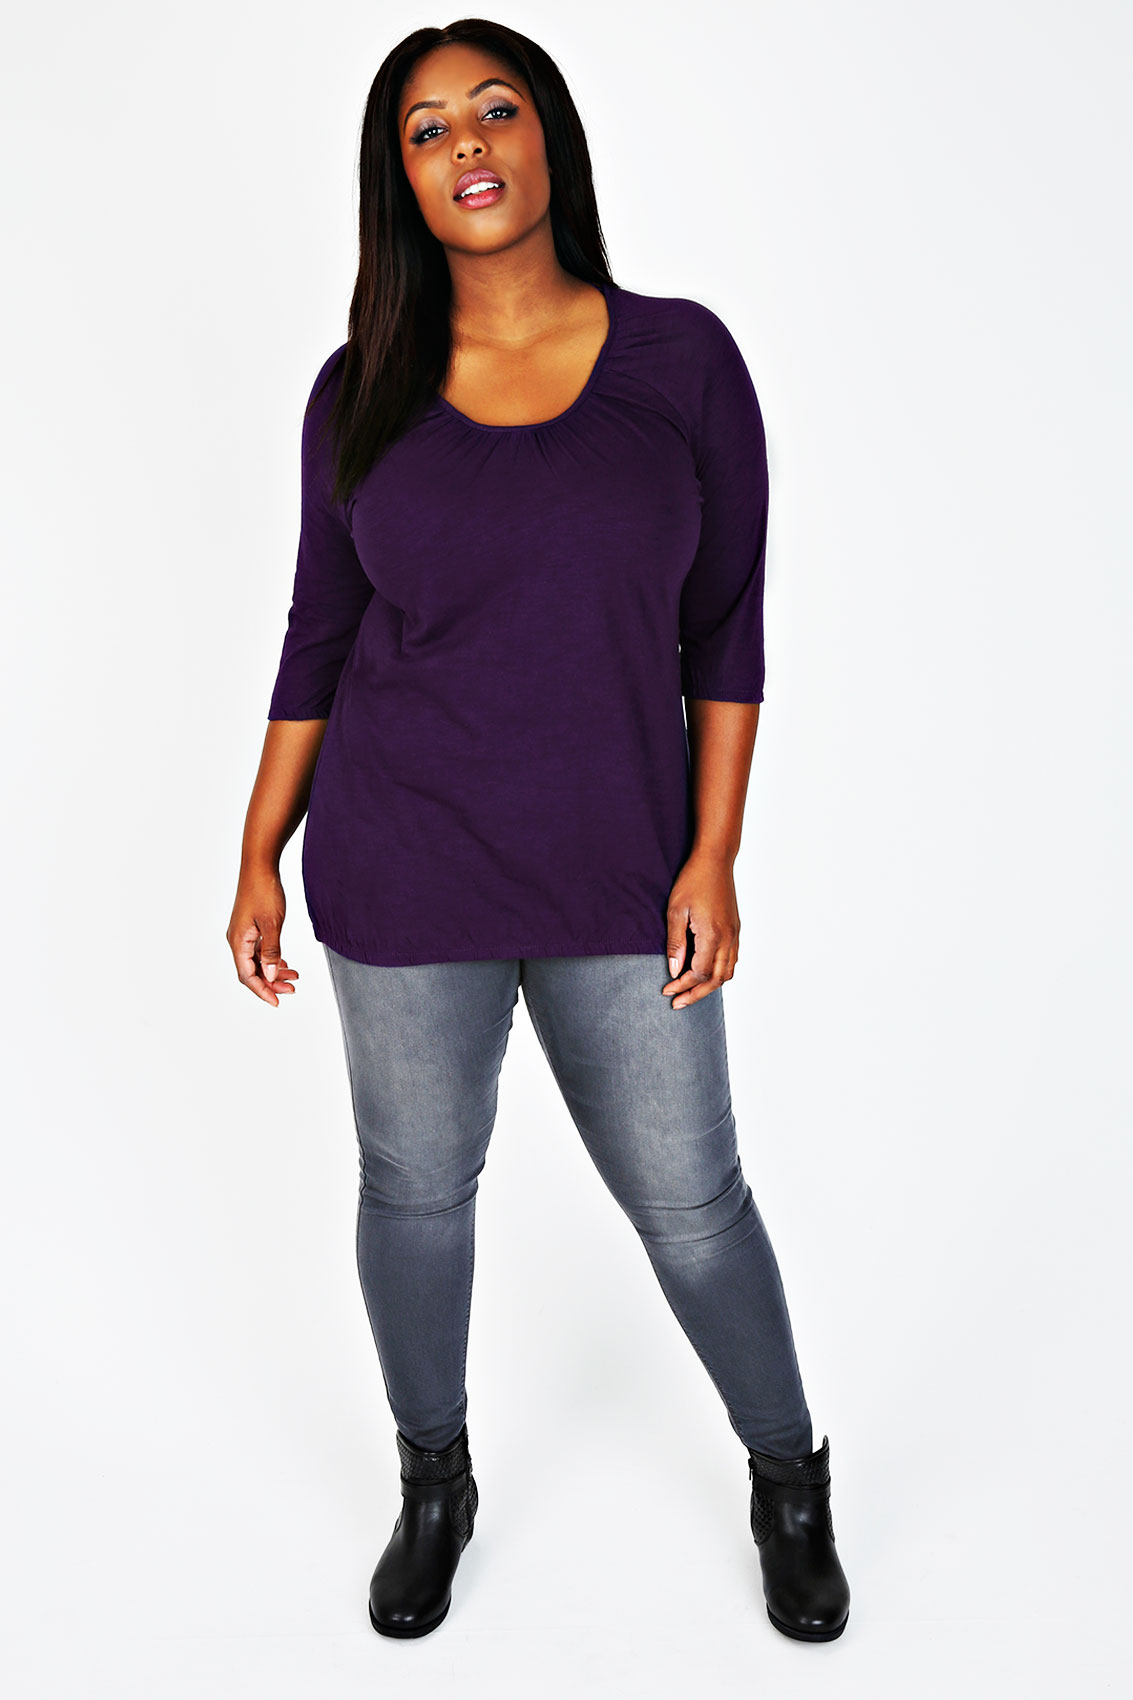 purple 3 4 sleeve top with bubble hem plus size 16 to 32. Black Bedroom Furniture Sets. Home Design Ideas